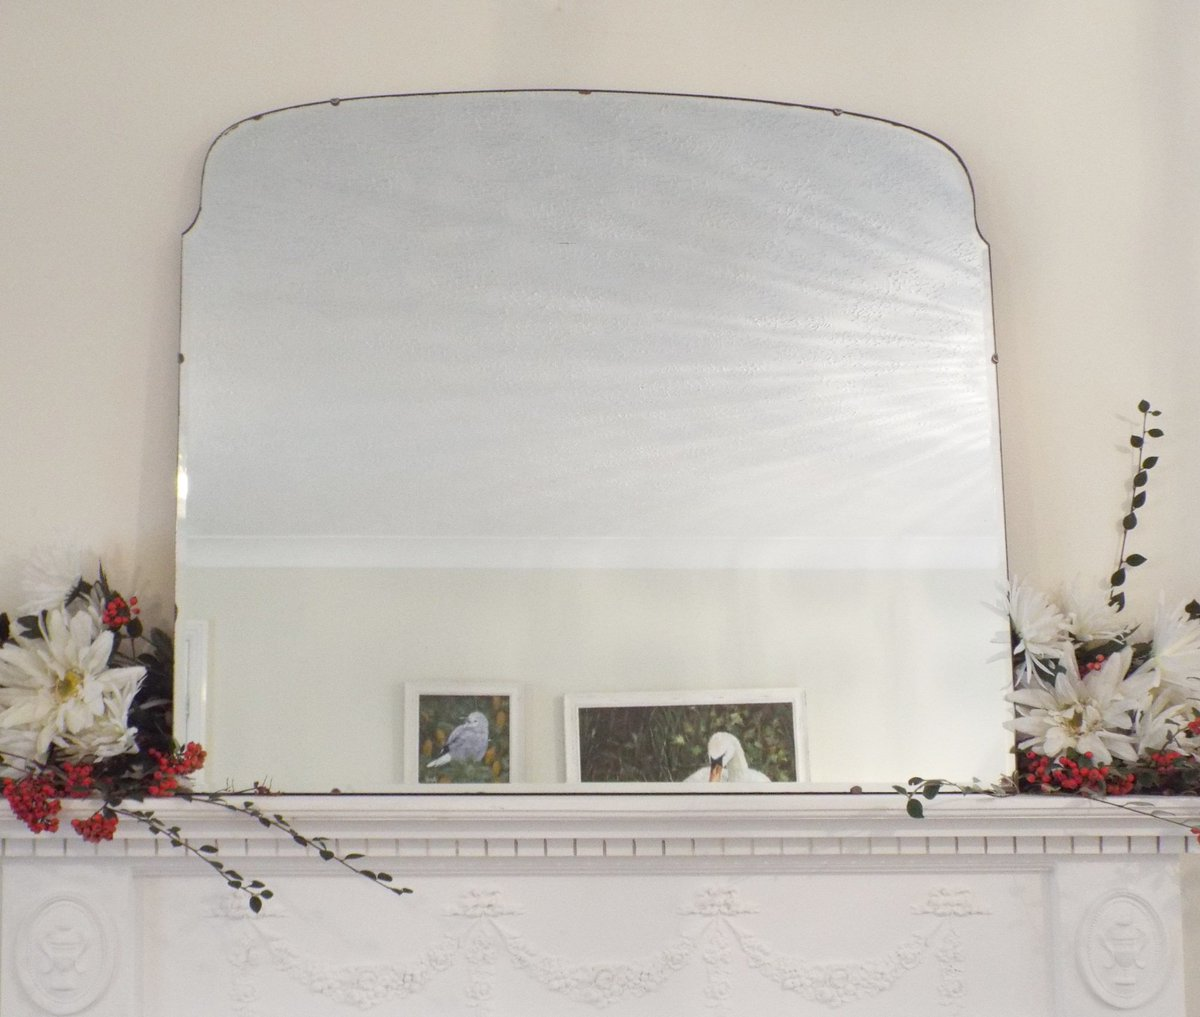 Antique Art Deco Mirror Frameless Feature Extra Large Mirror M437 Check It Out #artdeco #artfeature #decoart http://bit.ly/2JUswRk pic.twitter.com/uqwcK1sKf6